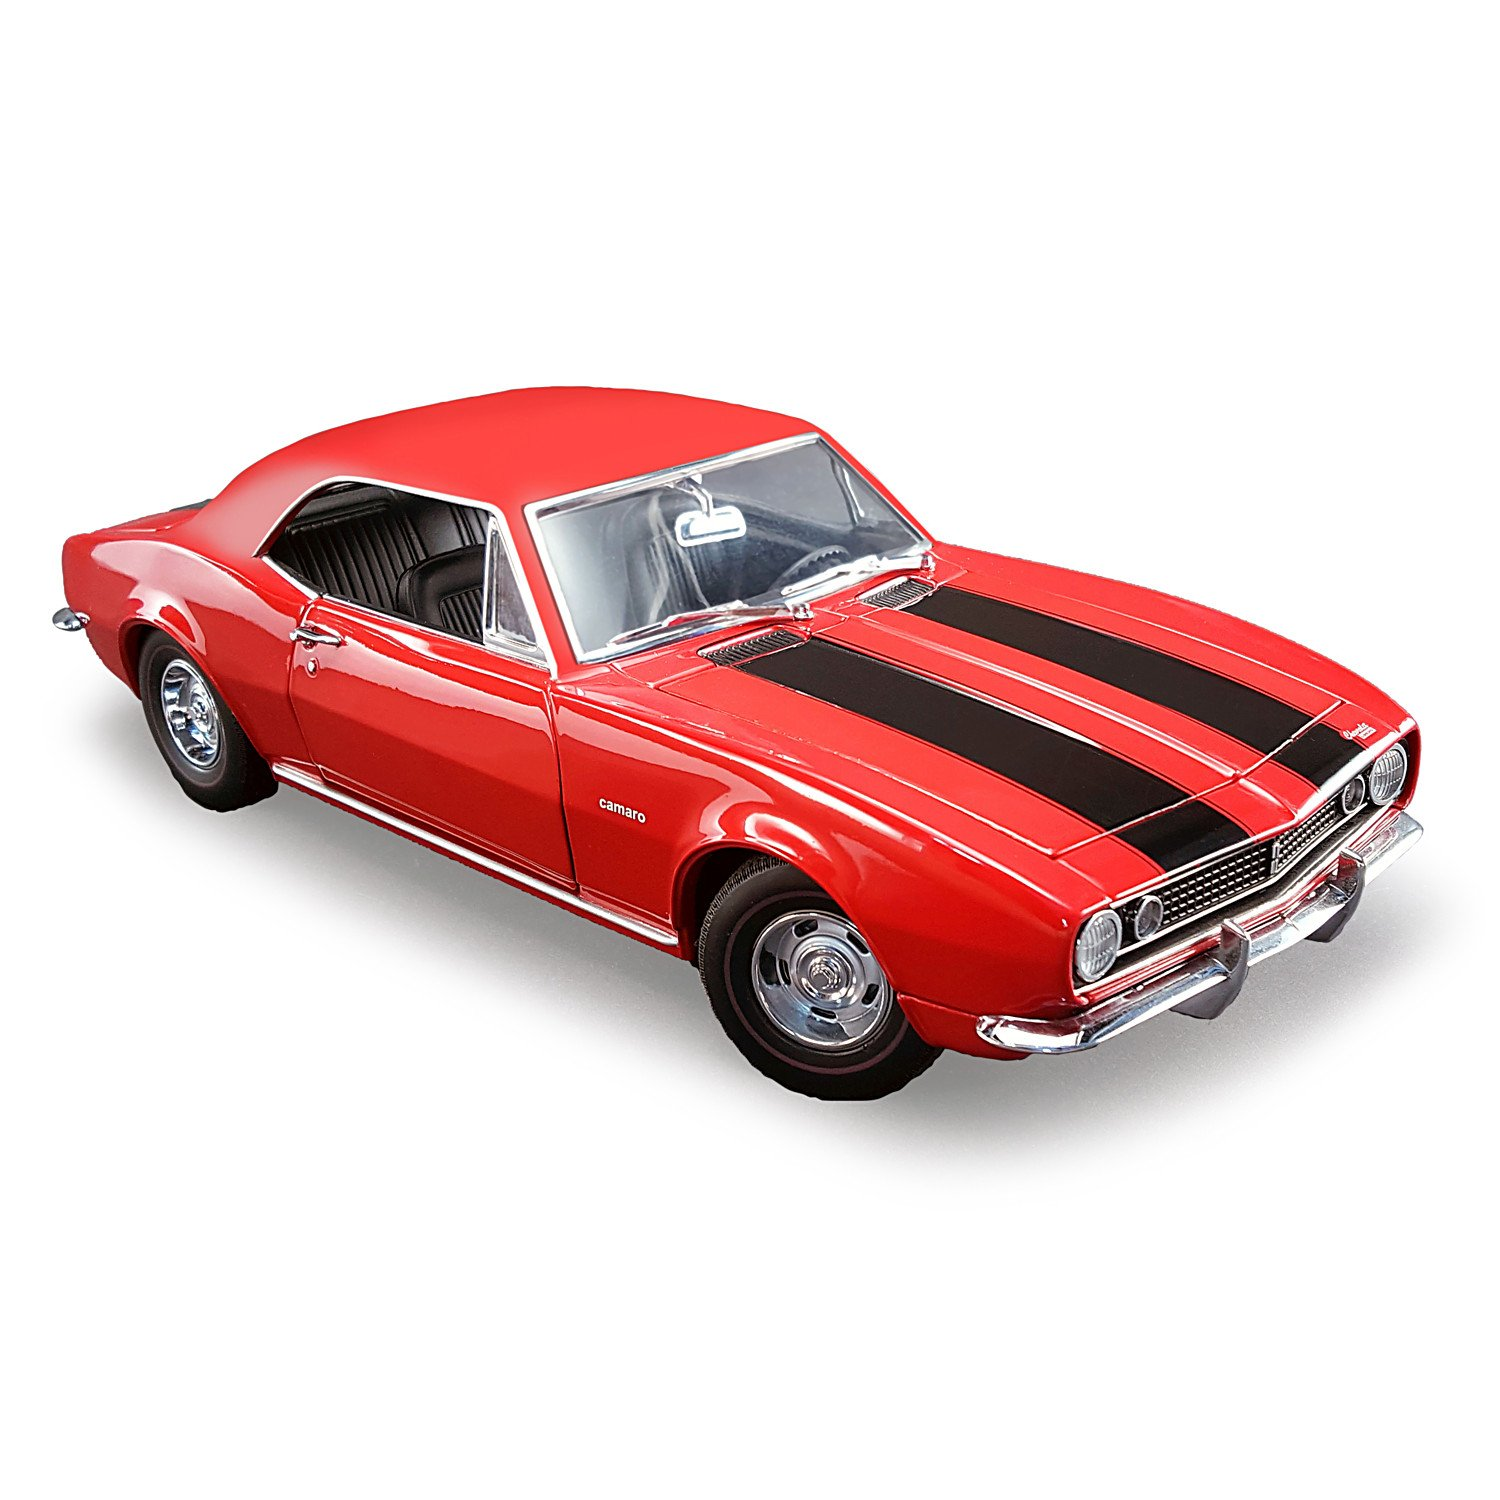 1:18 Scale 1967 Chevrolet Camaro Z/28 Bolero Red Diecast Car with Moving Parts by The Hamilton Collection